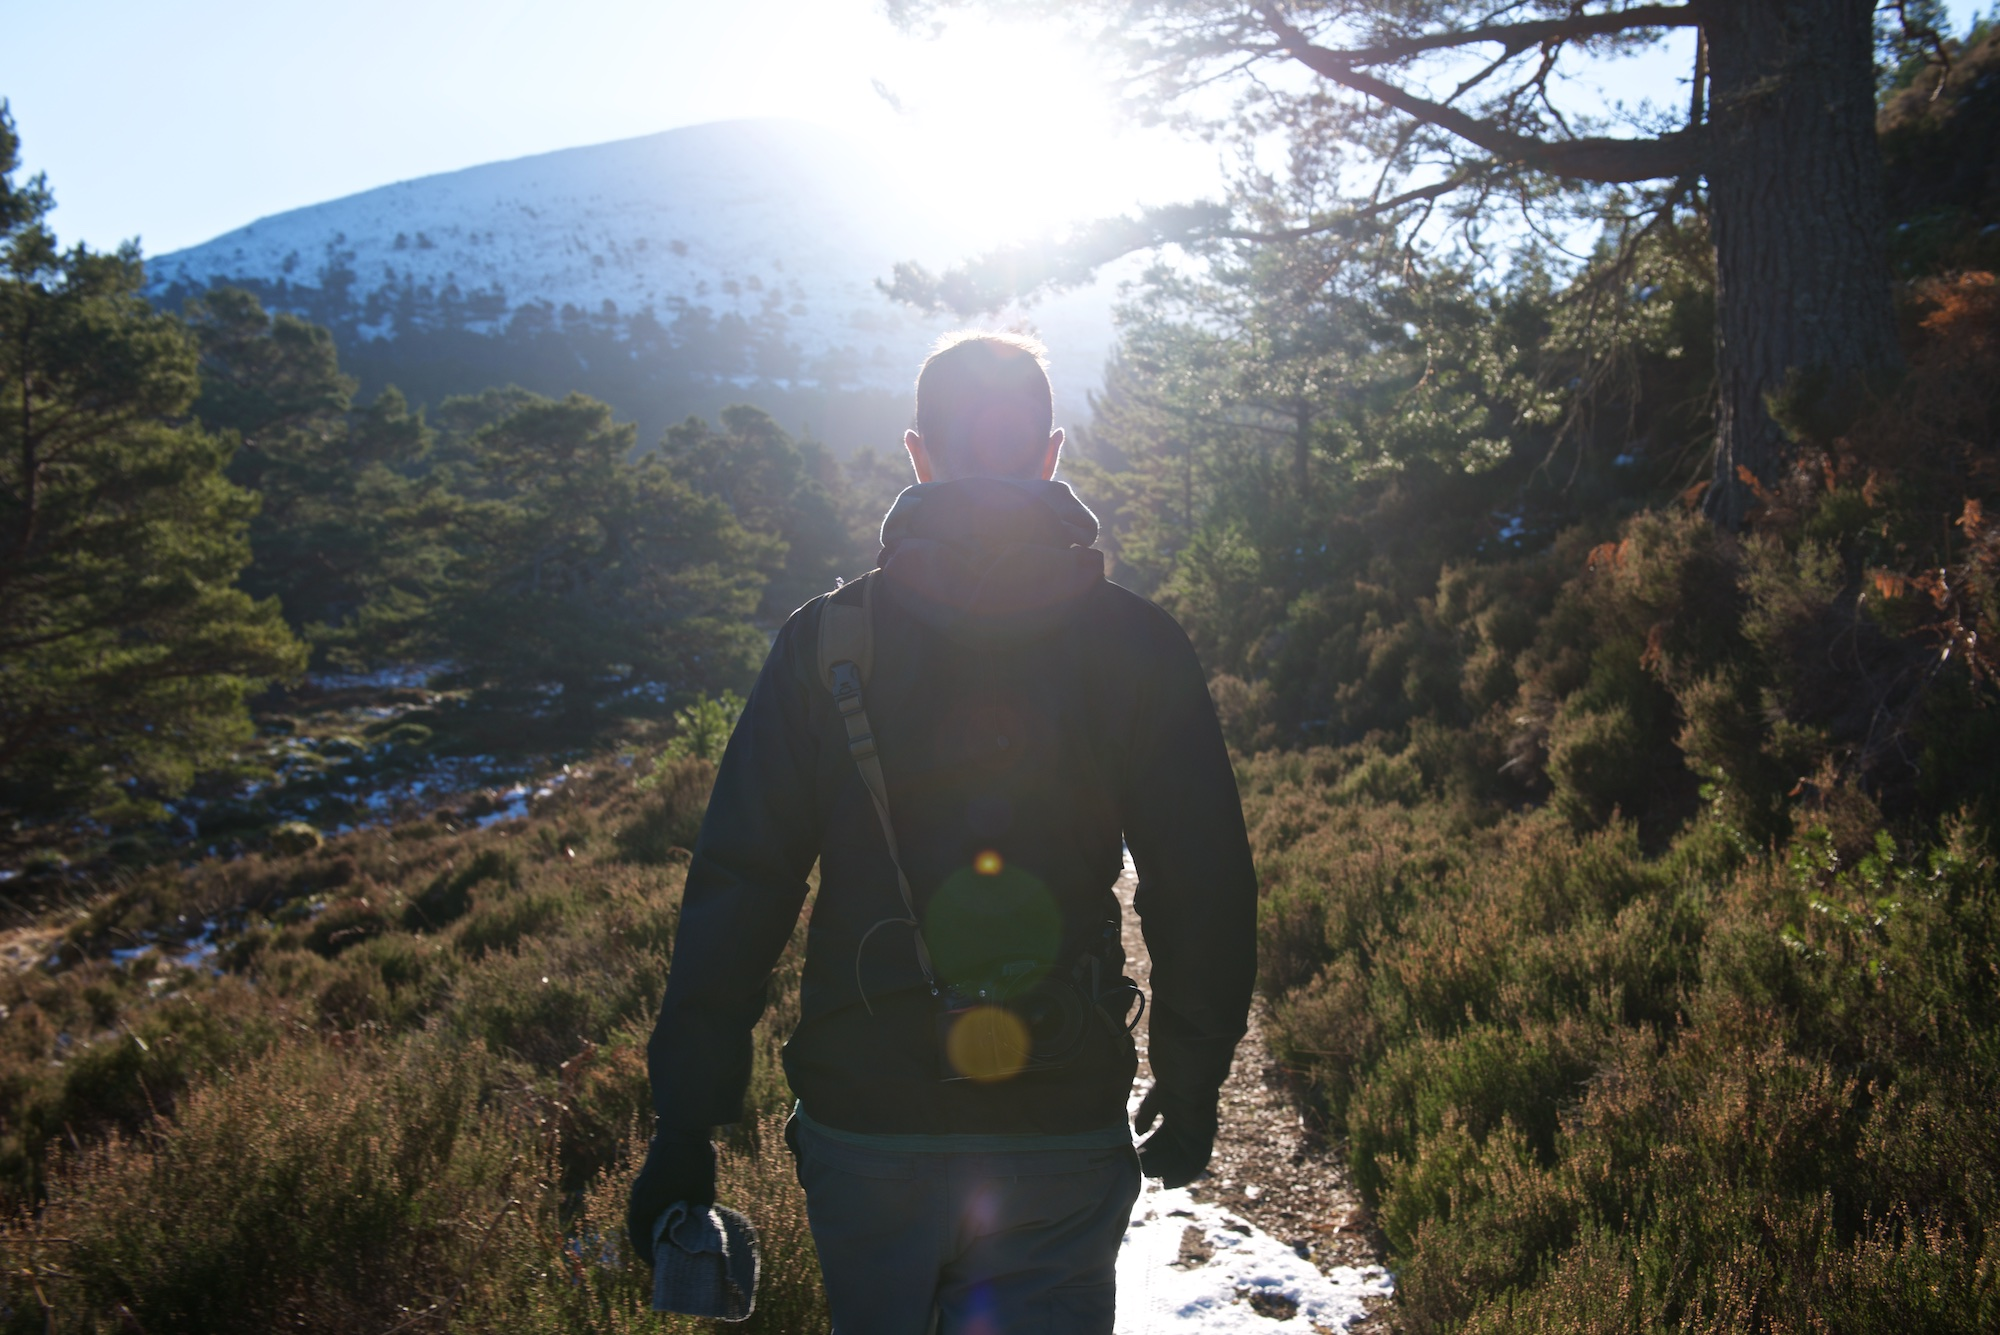 A photo taken from behind as Chris walks ahead. The sun is directly ahead causing Chris to be mostly silhouette with brightly lit edges of his body. The surrounding countryside is fresh with evergreen trees and a snowy mountain in the background.